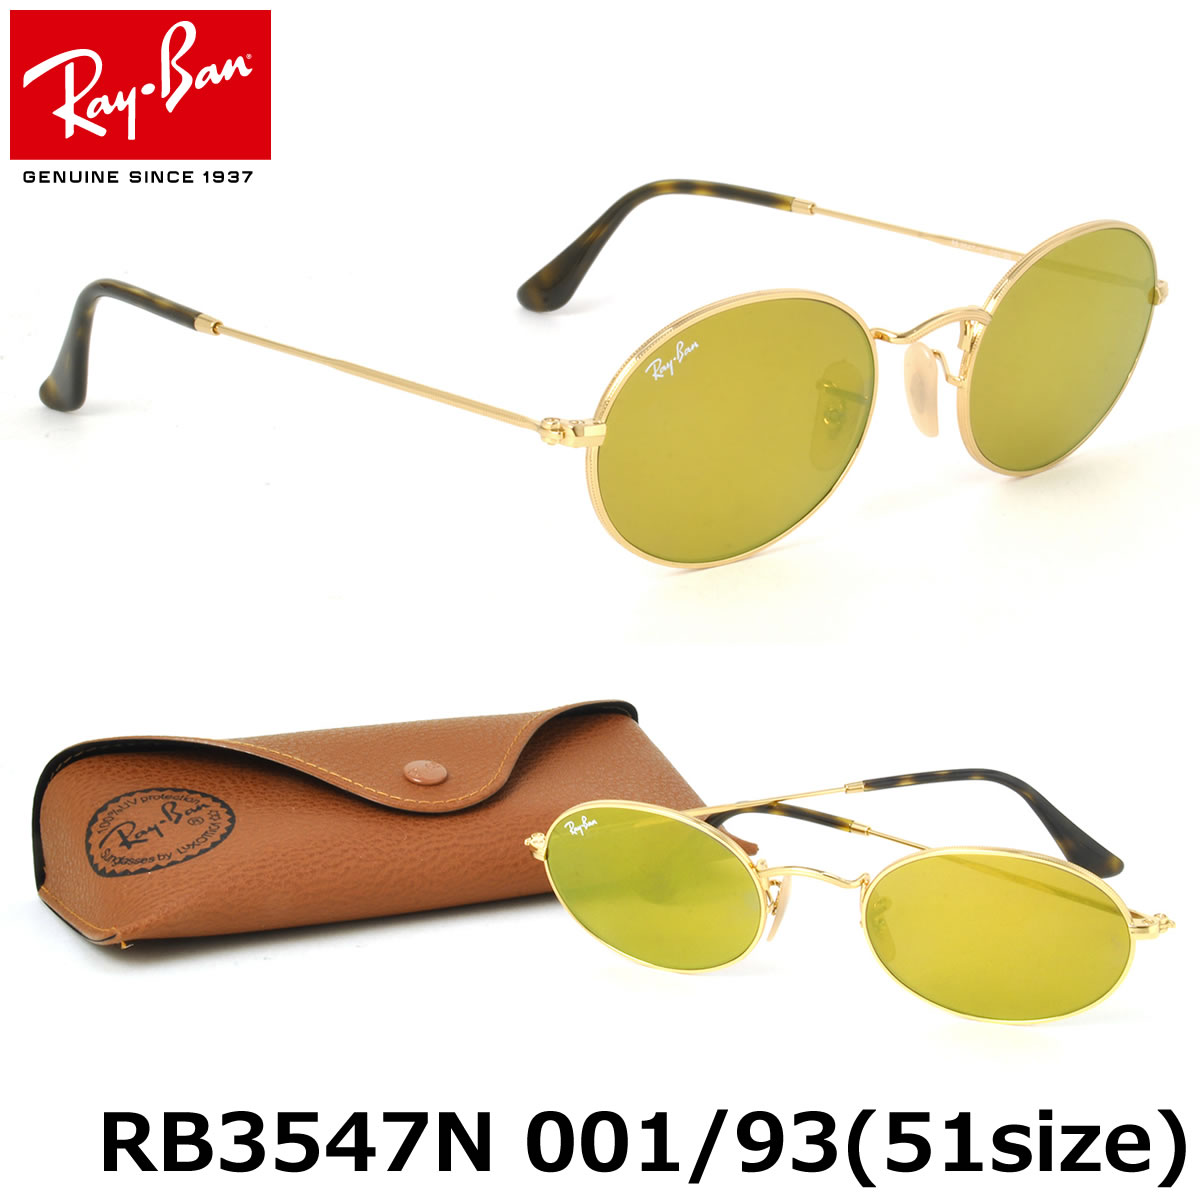 51c2d35b75 Optical Shop Thats  Ray-Ban Sunglasses RB3547N 001 93 51size OVAL ...